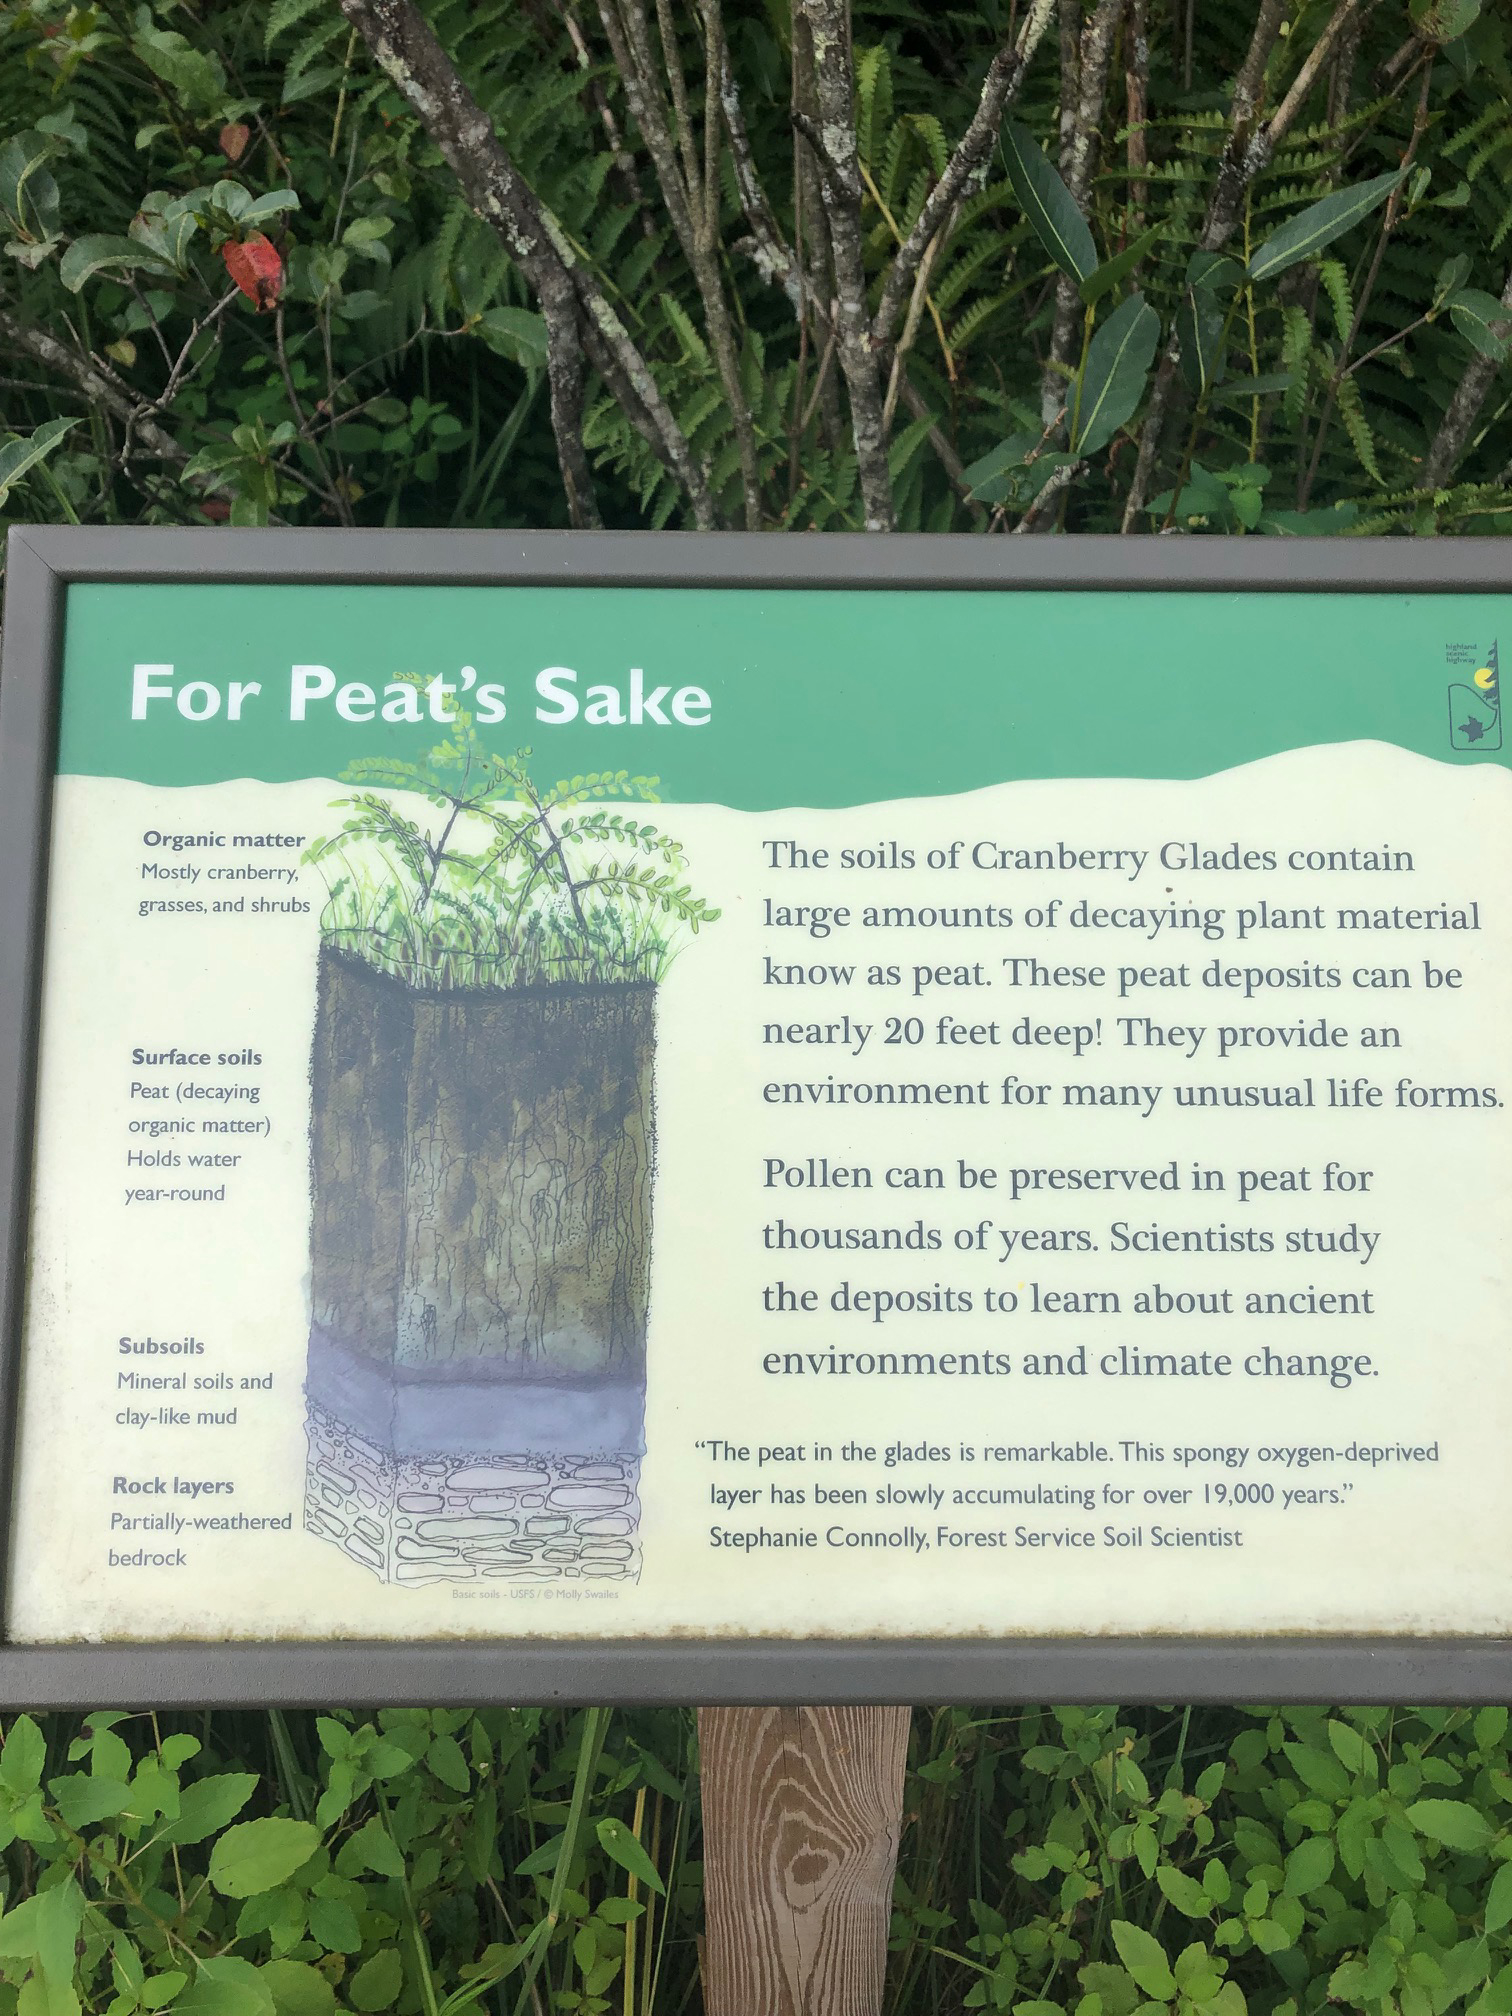 For Peat's Sake sign